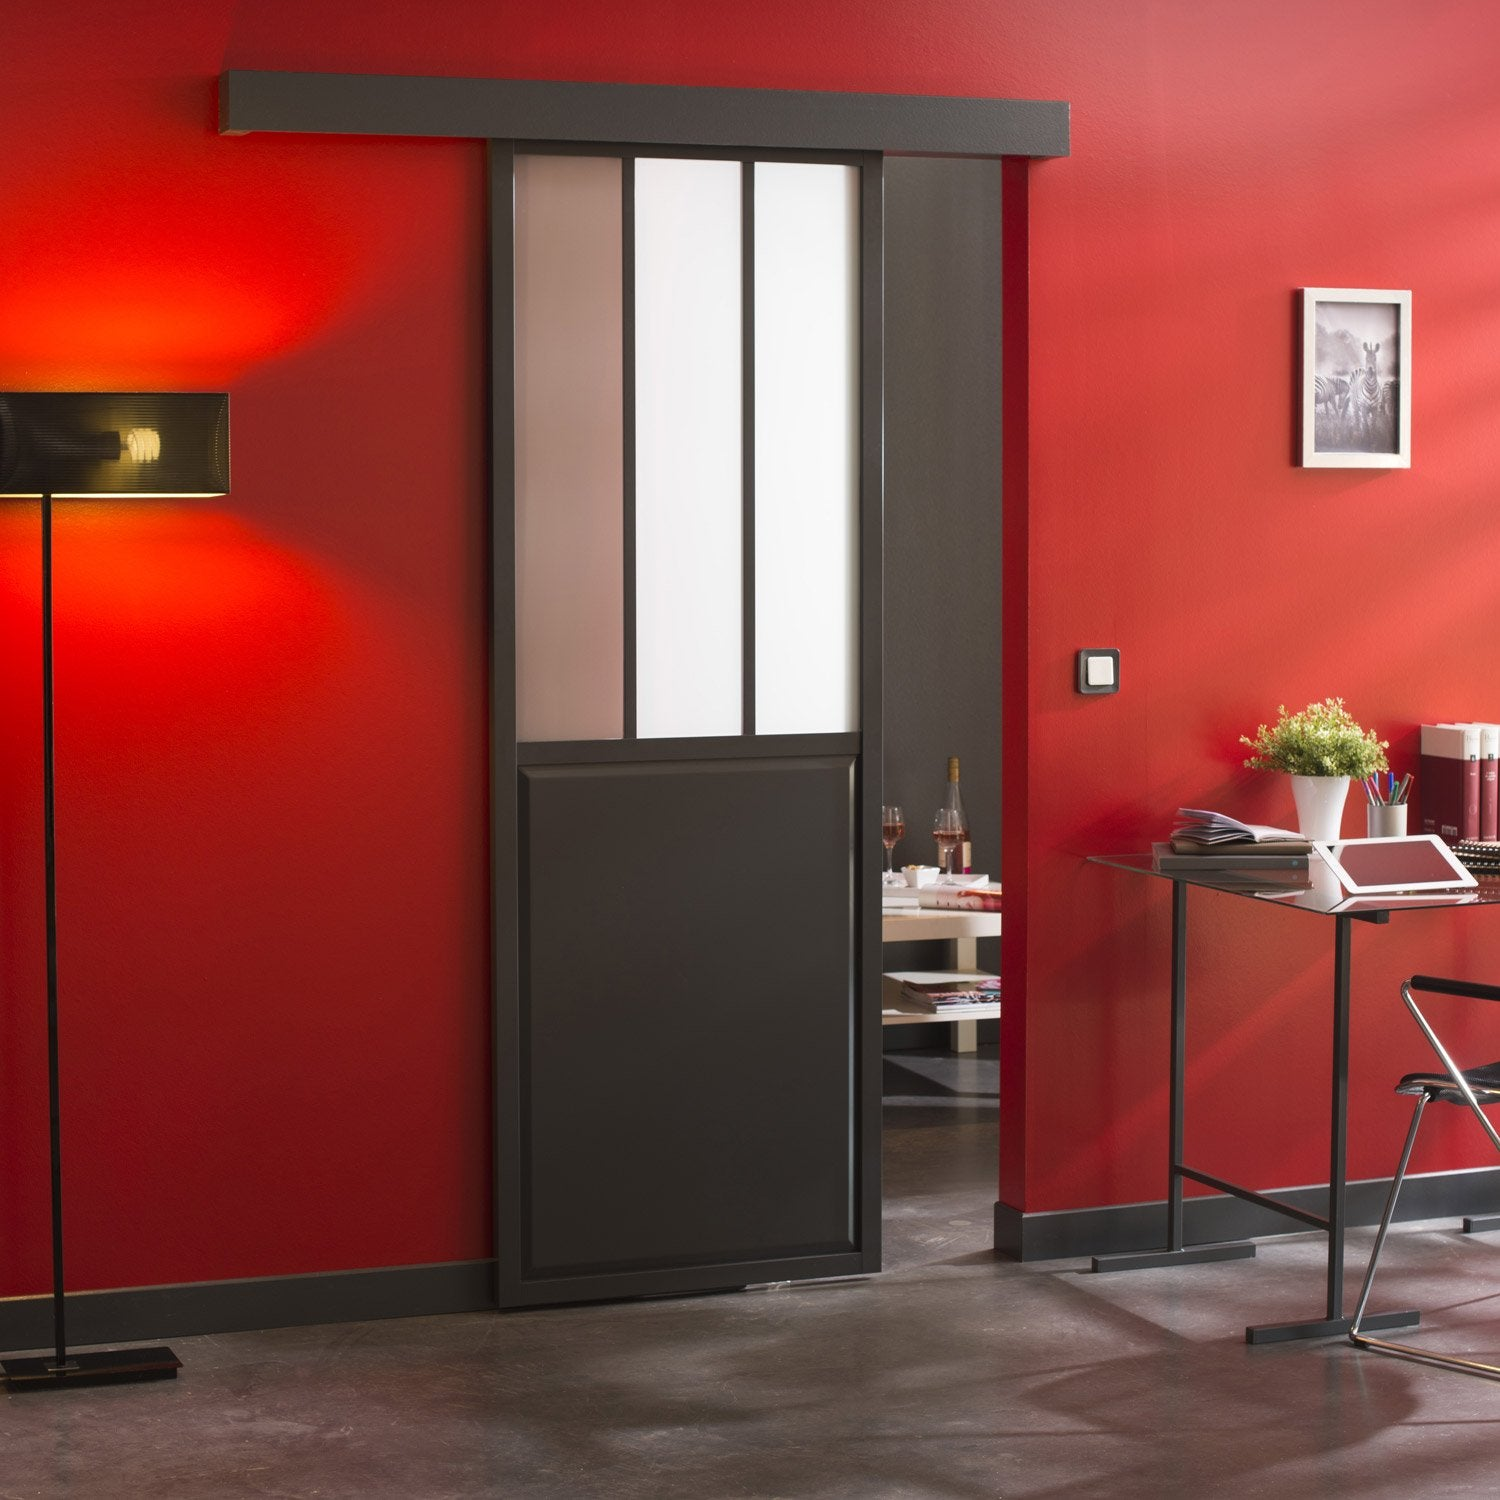 Ensemble porte coulissante atelier verre clair mdf rev tu for Miroir atelier leroy merlin